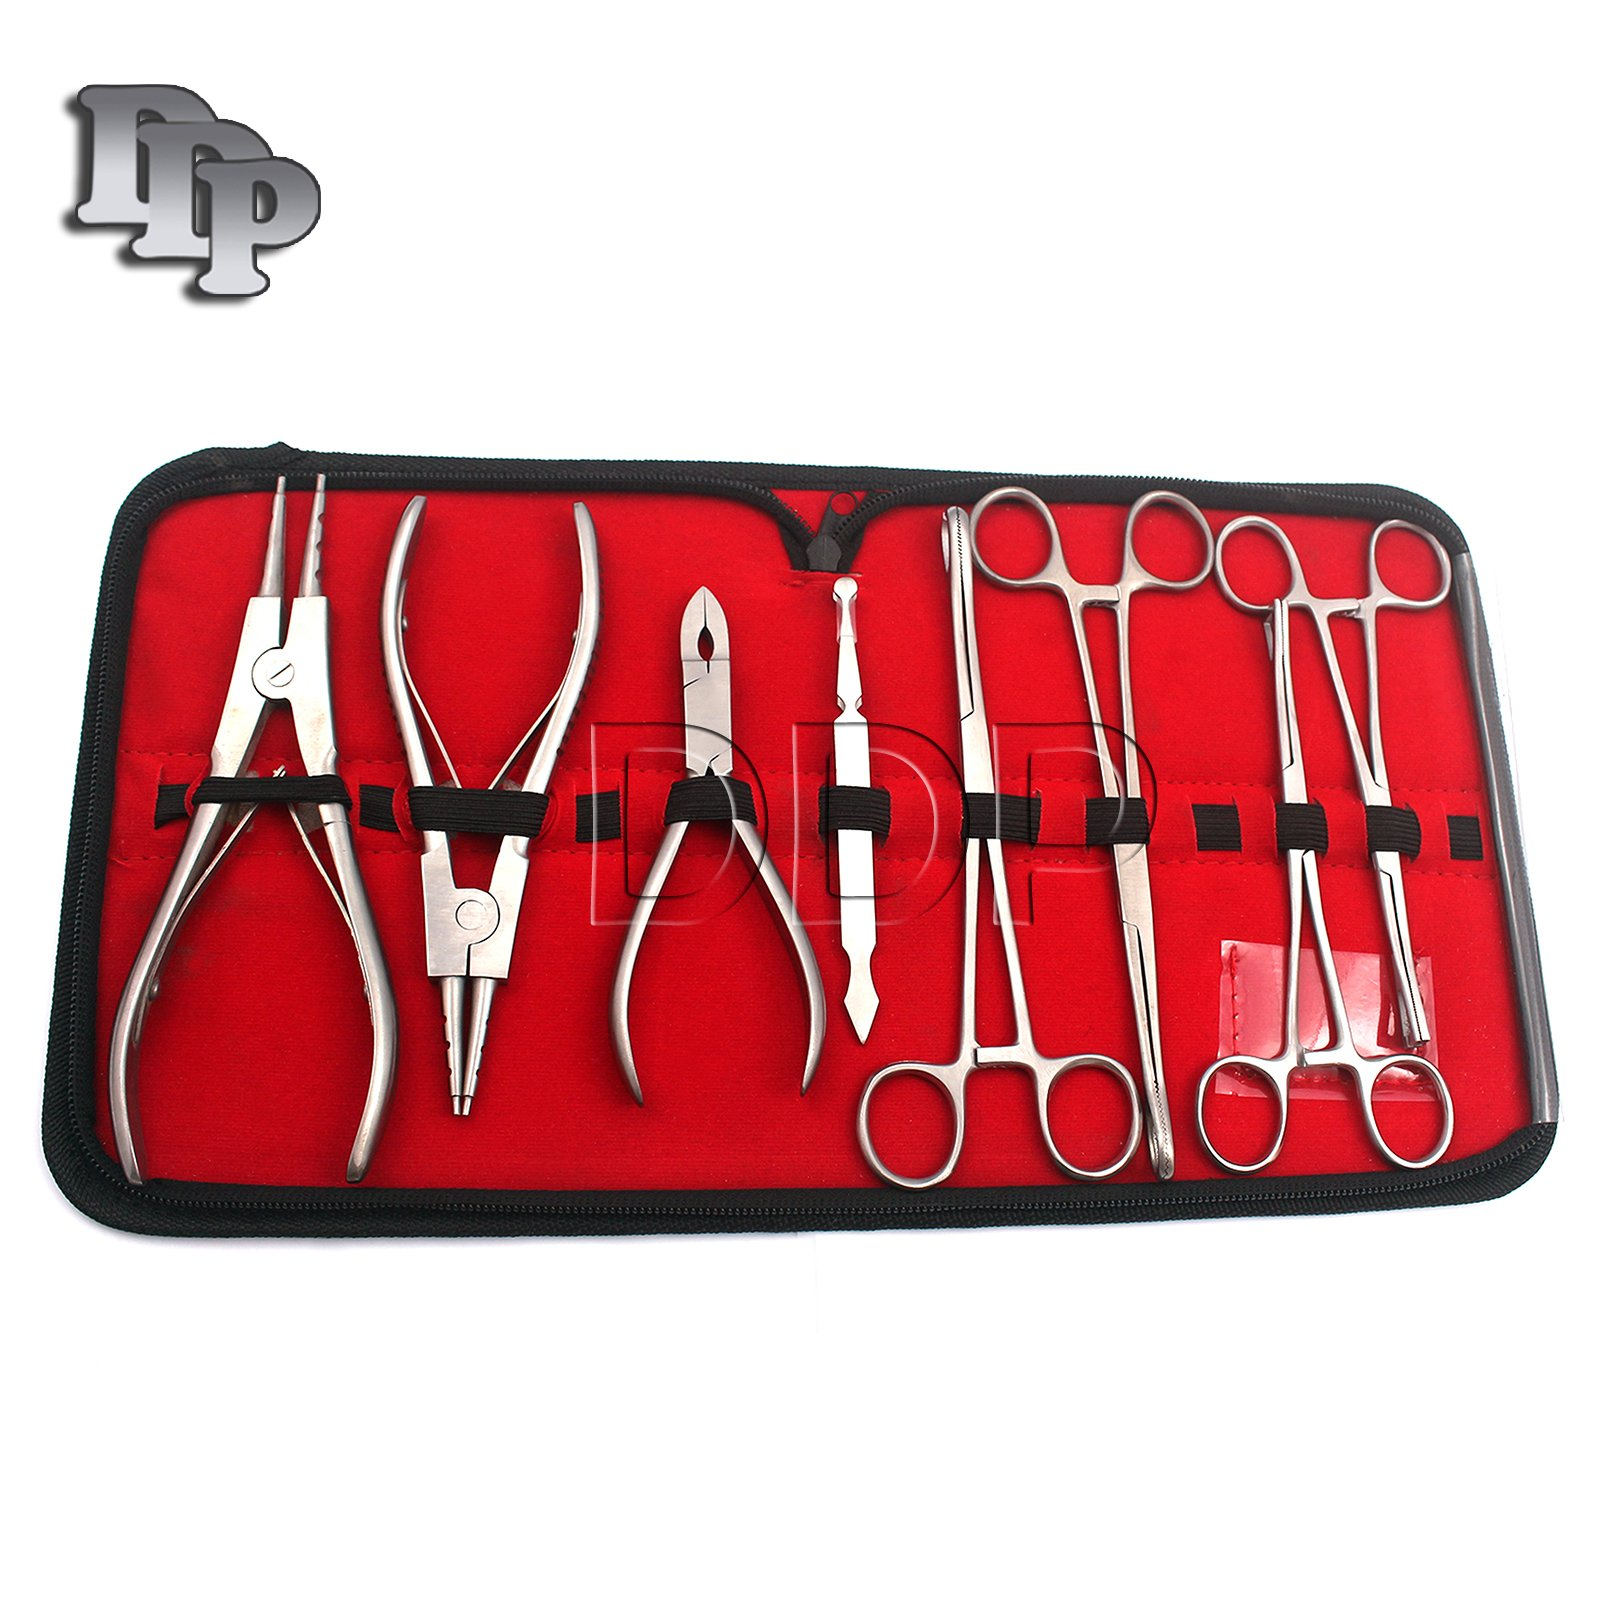 DDP 8PC PROFESSIONAL PIERCING TOOL KIT W/ CASE